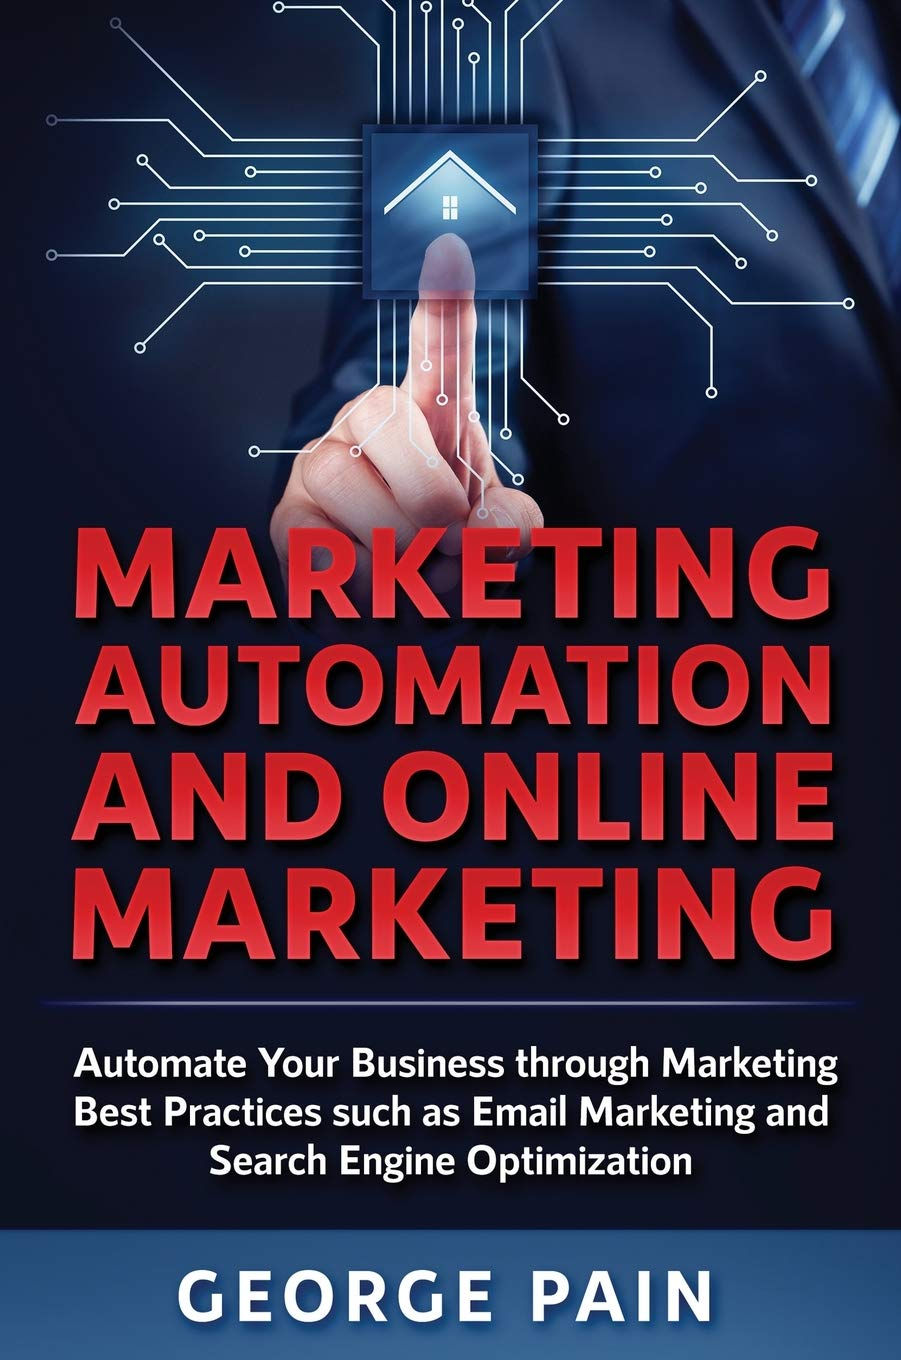 Image OfMarketing Automation And Online Marketing: Automate Your Business Through Marketing Best Practices Such As Email Marketing...